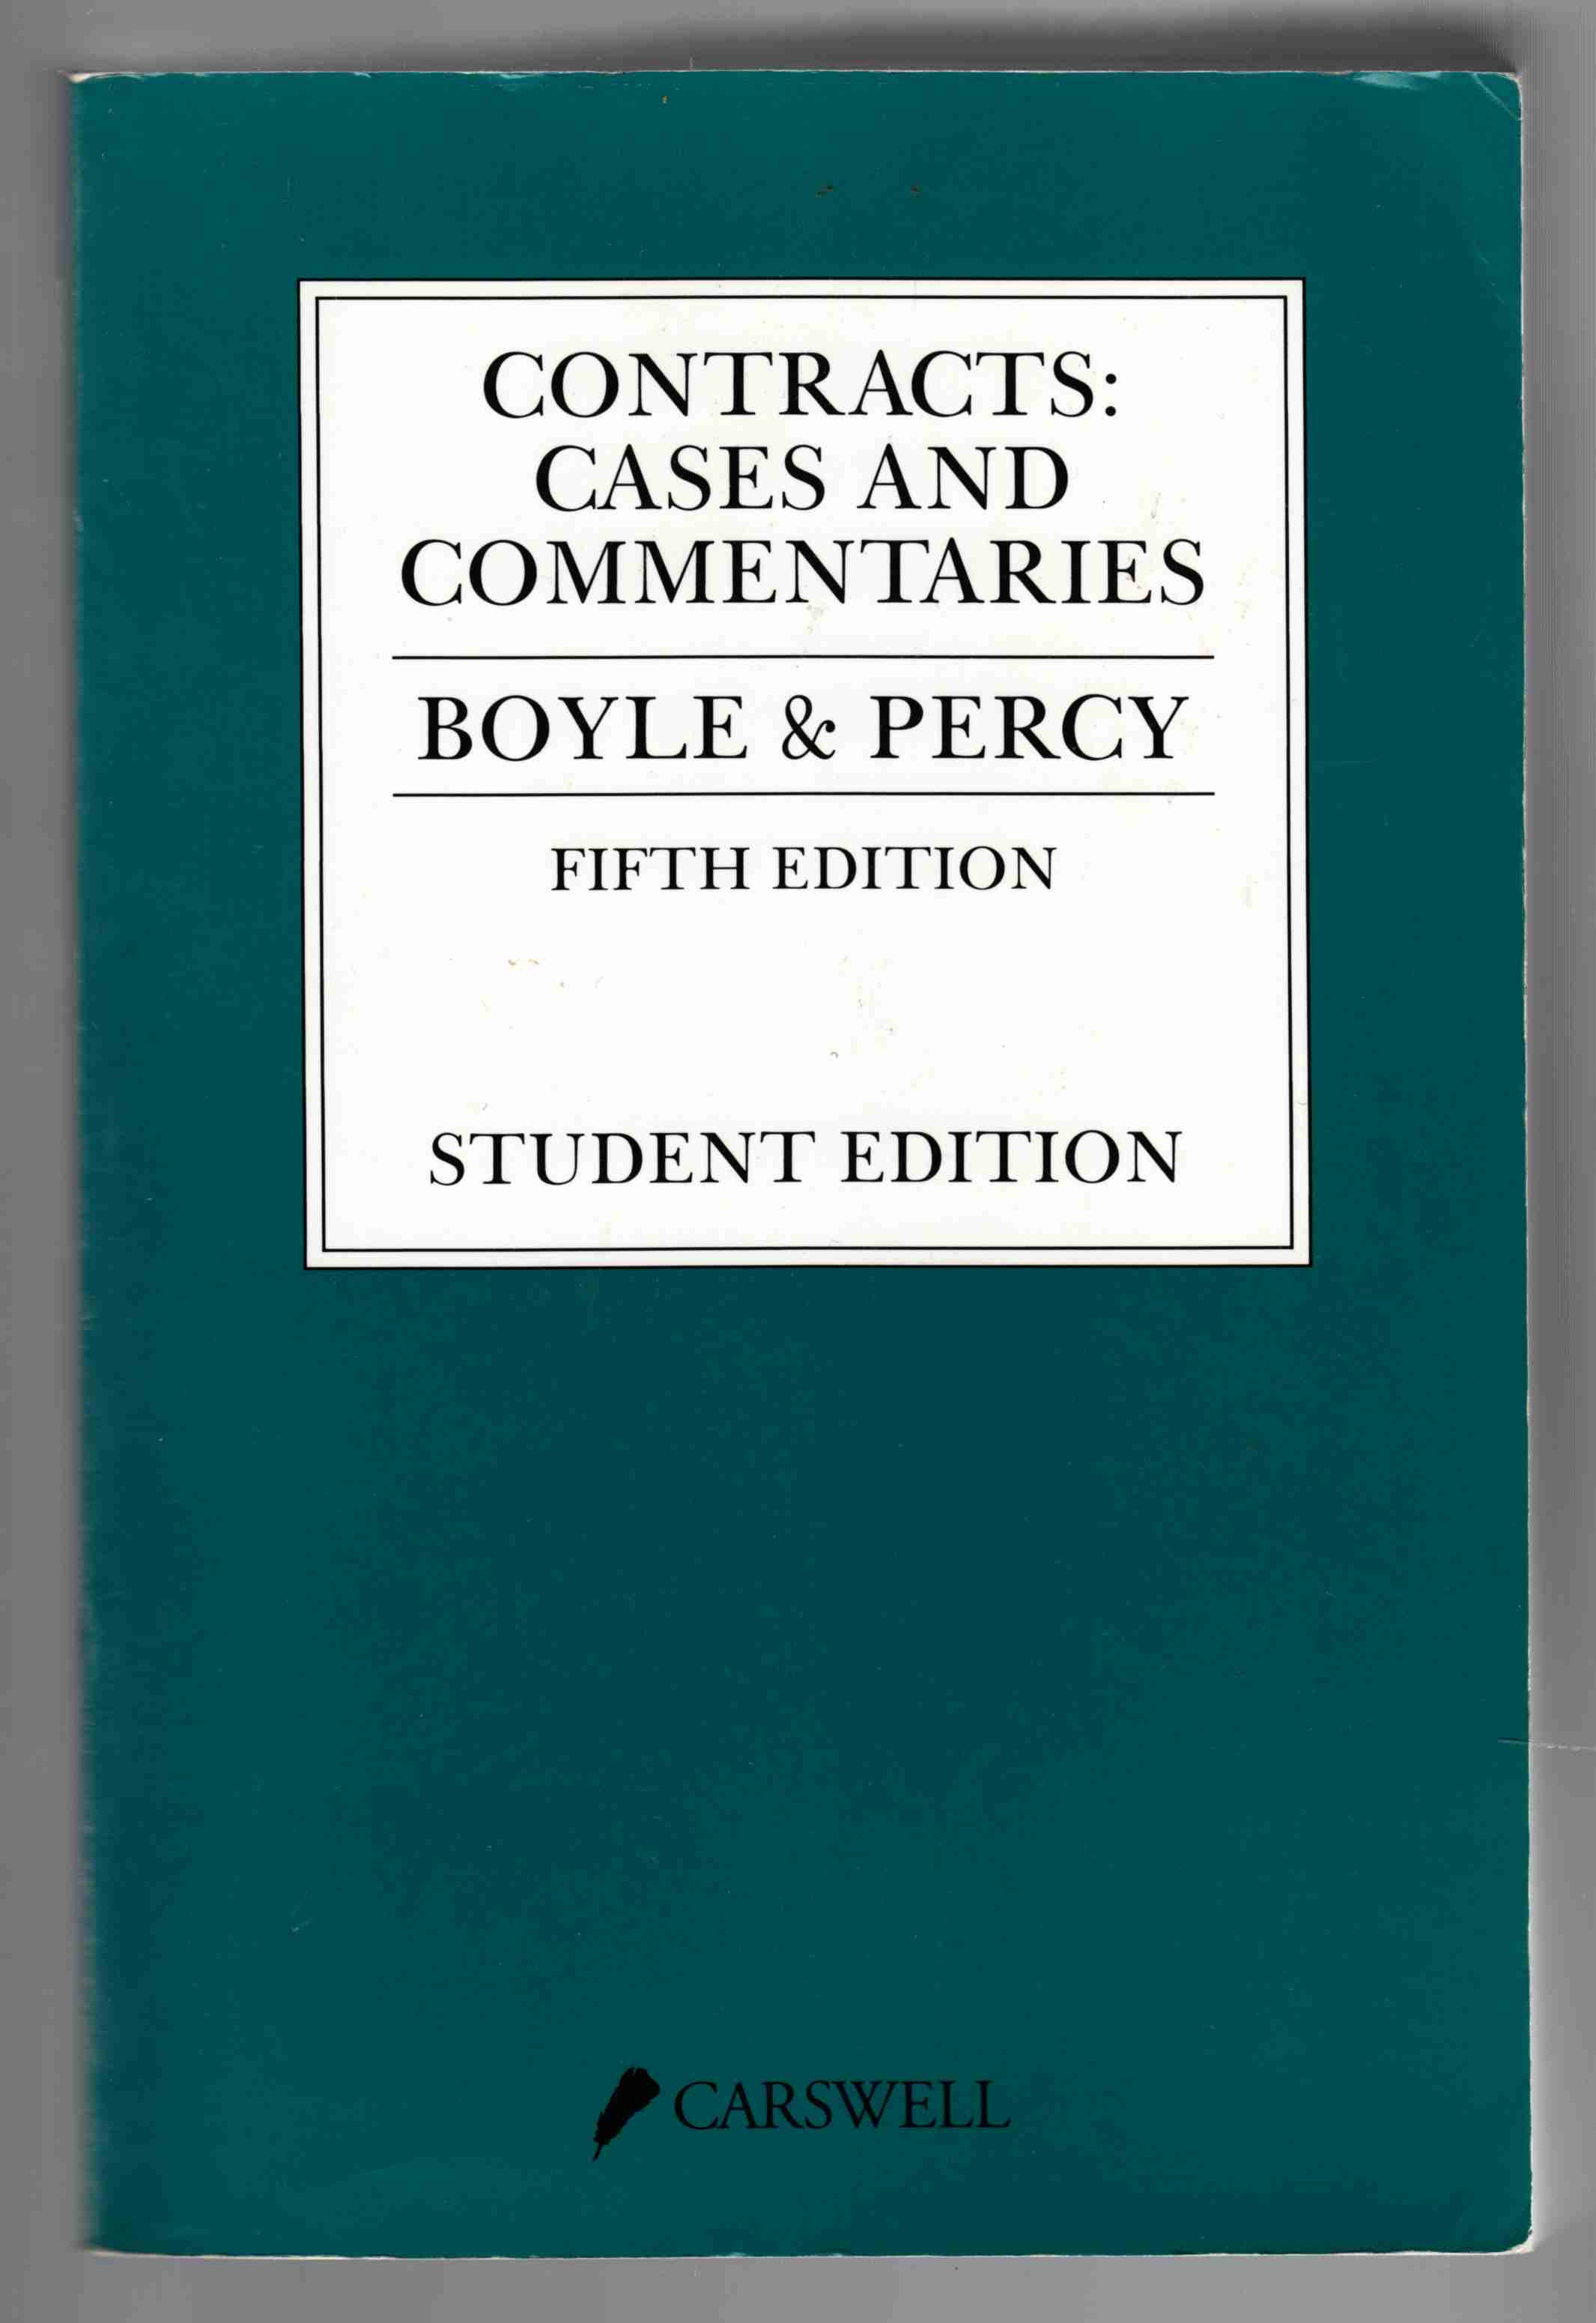 Image for Contracts: Cases and Commentaries Student Edition, Fifth Edition